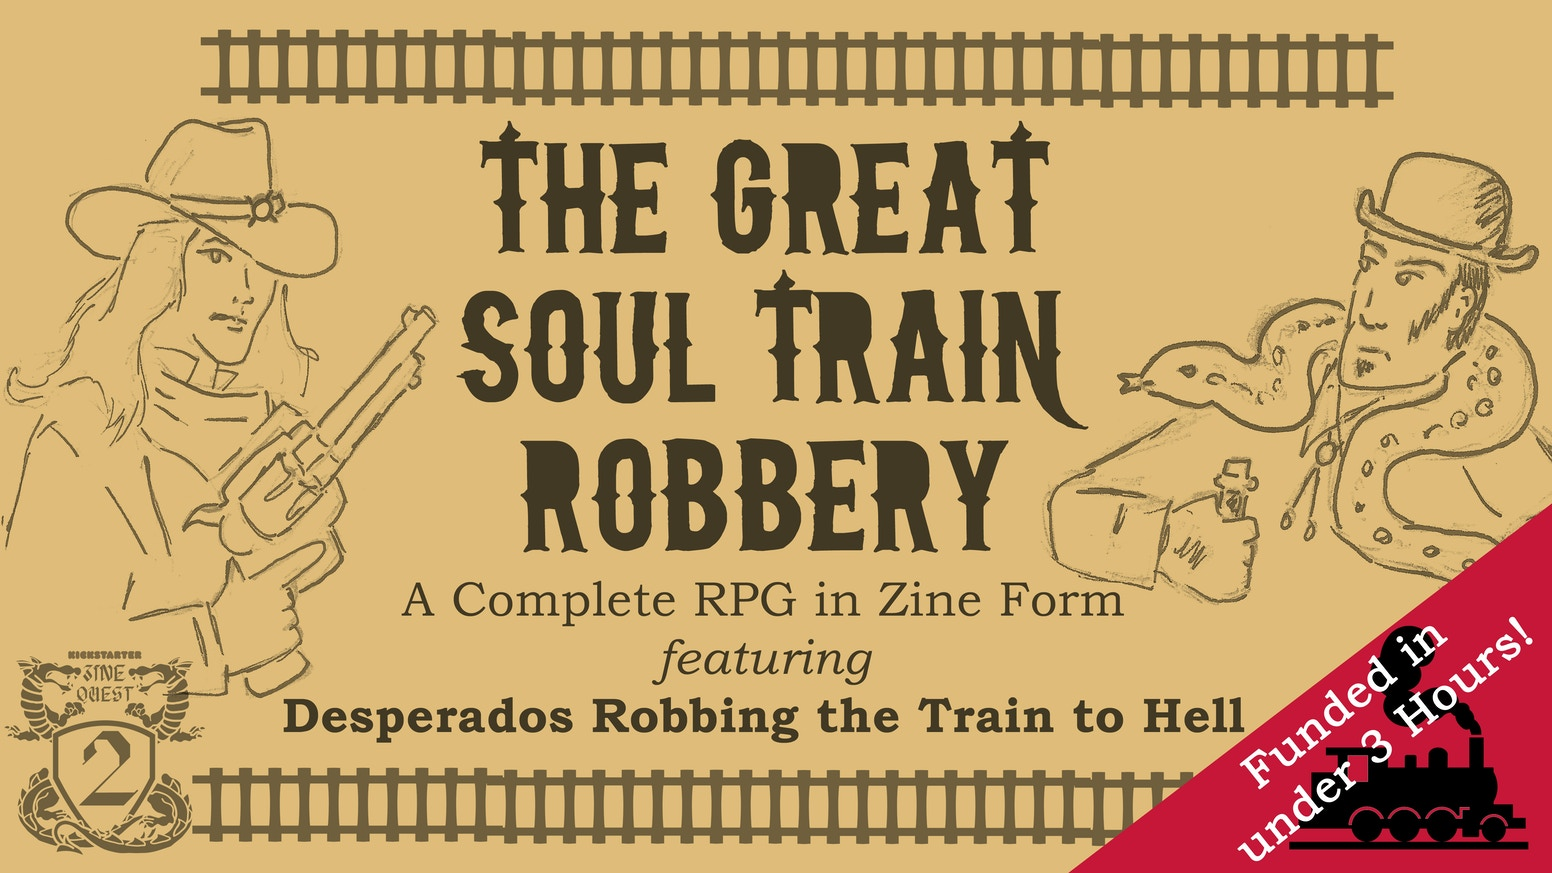 A one-shot tabletop RPG in zine form, about Desperados robbing the train to Hell. #ZineQuest